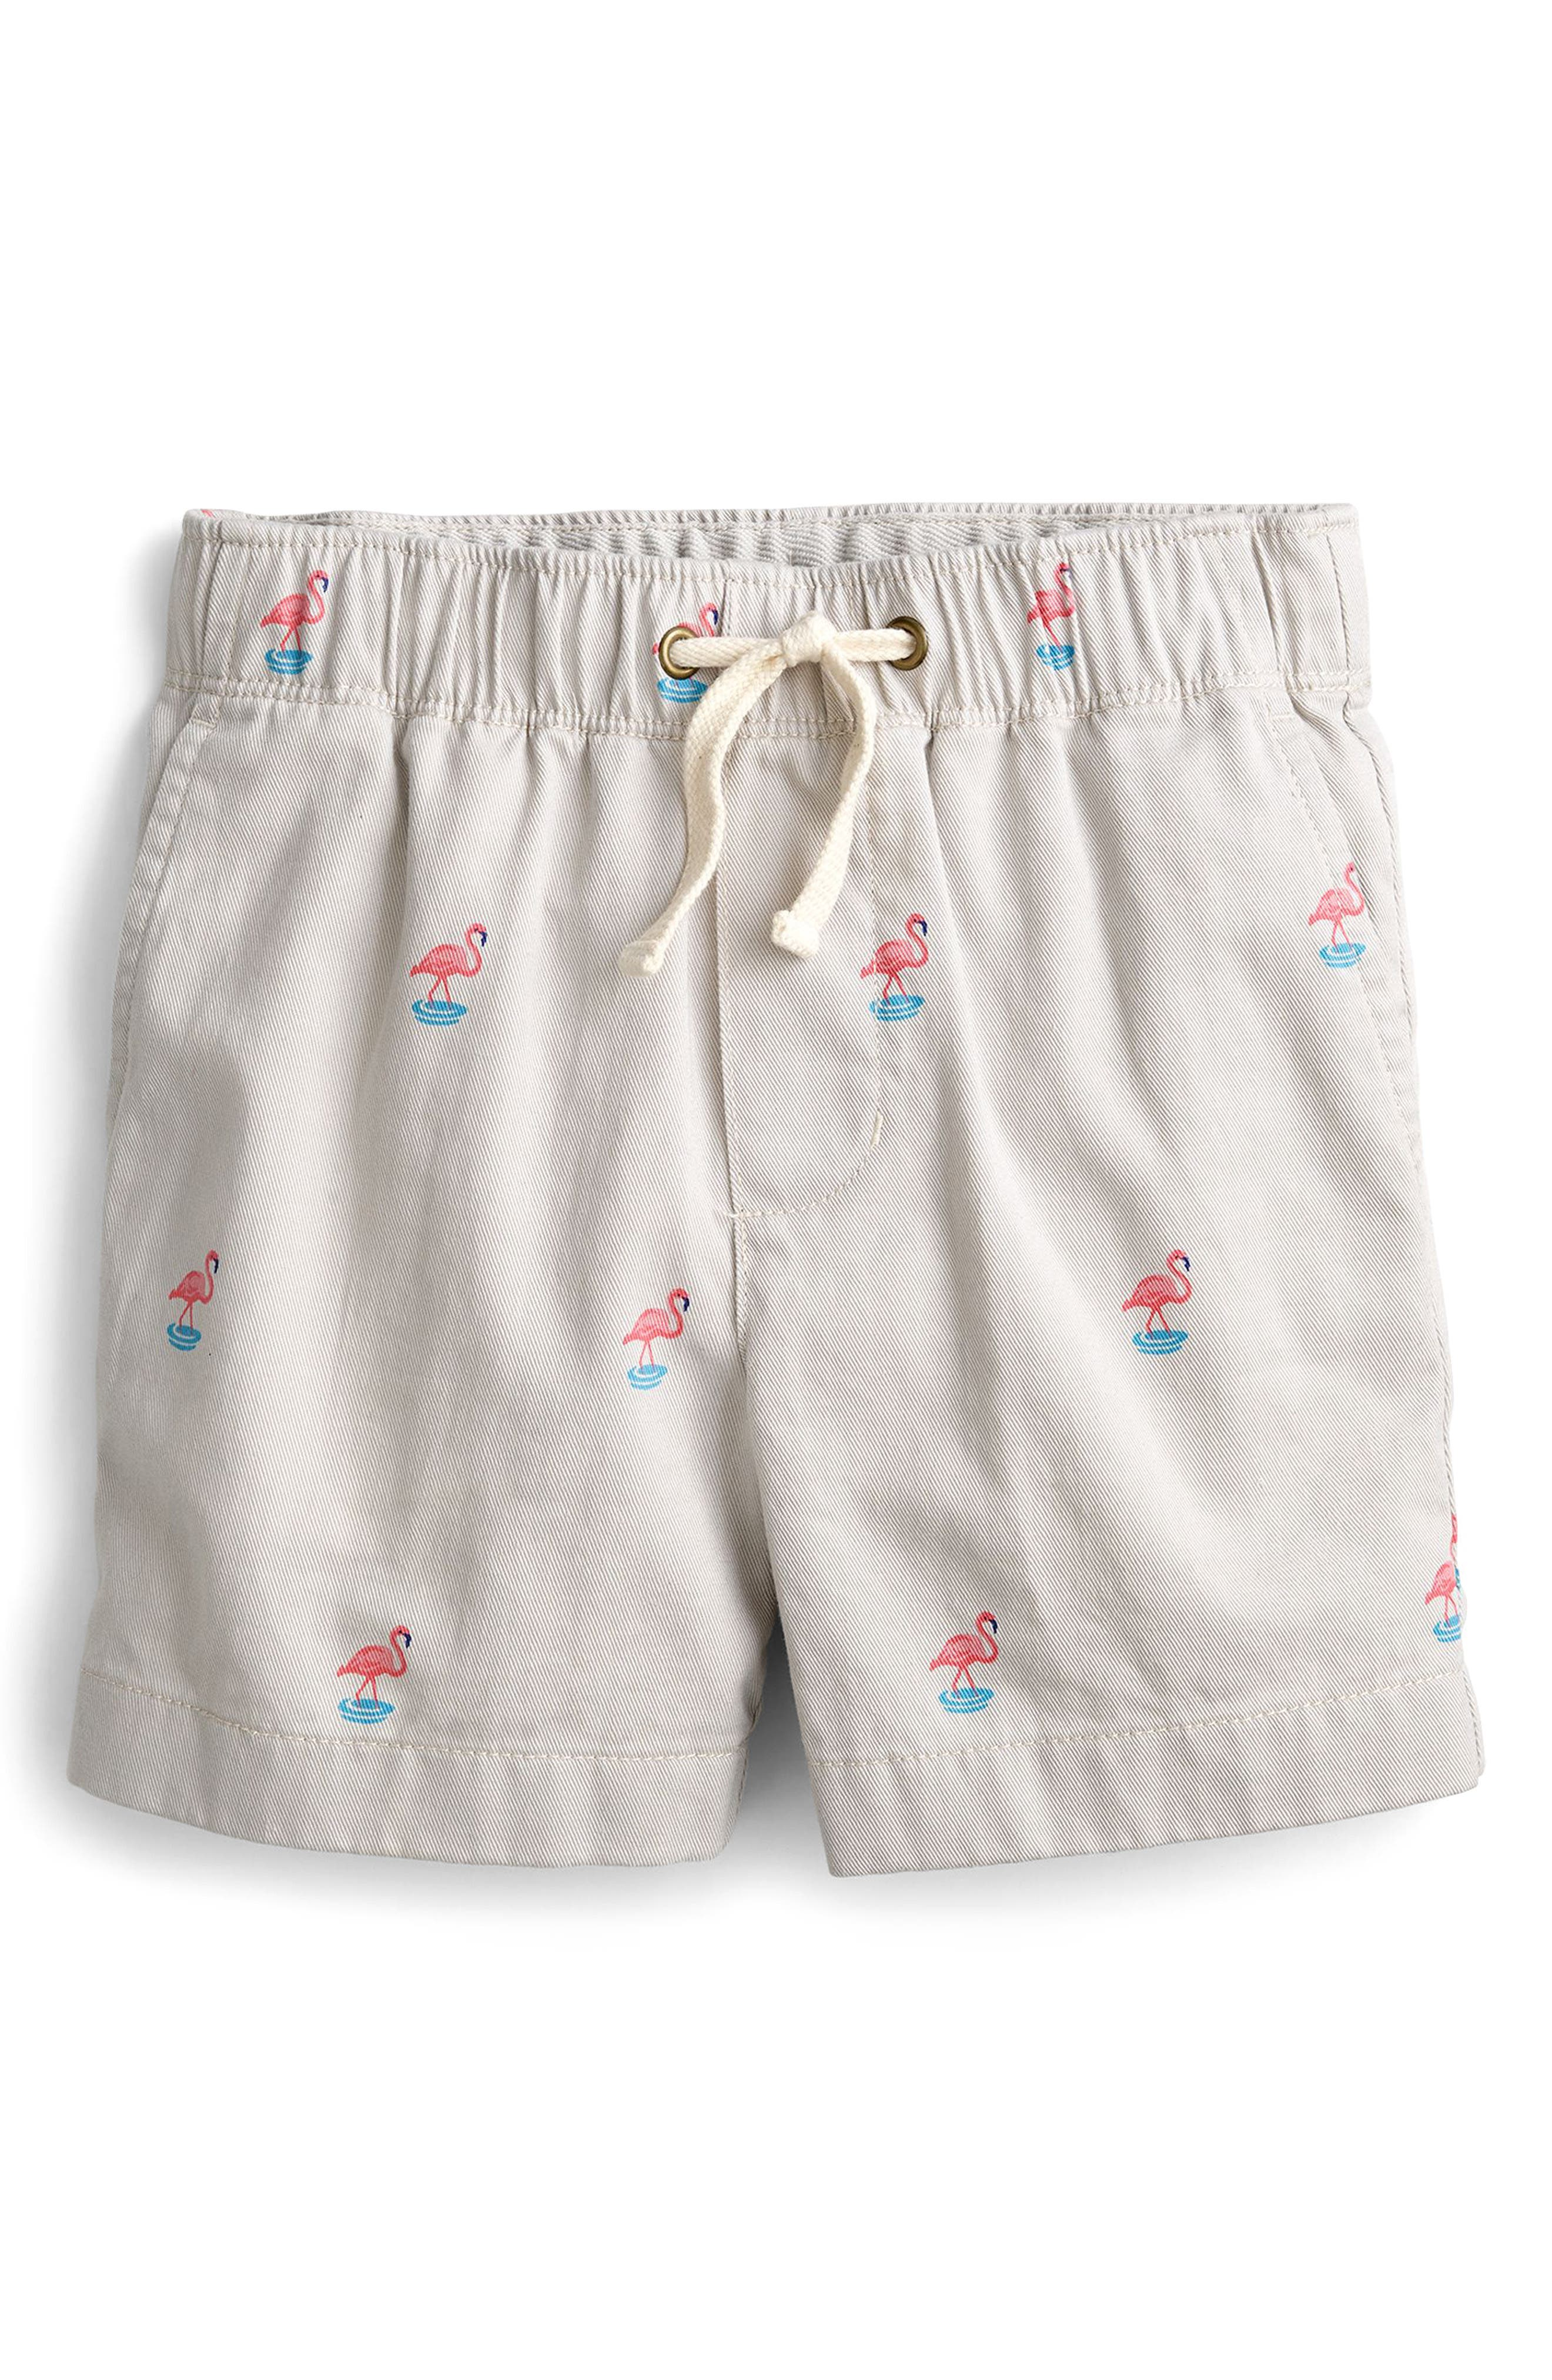 Dock Short in Critter Flamingo,                             Main thumbnail 1, color,                             Oyster Grey